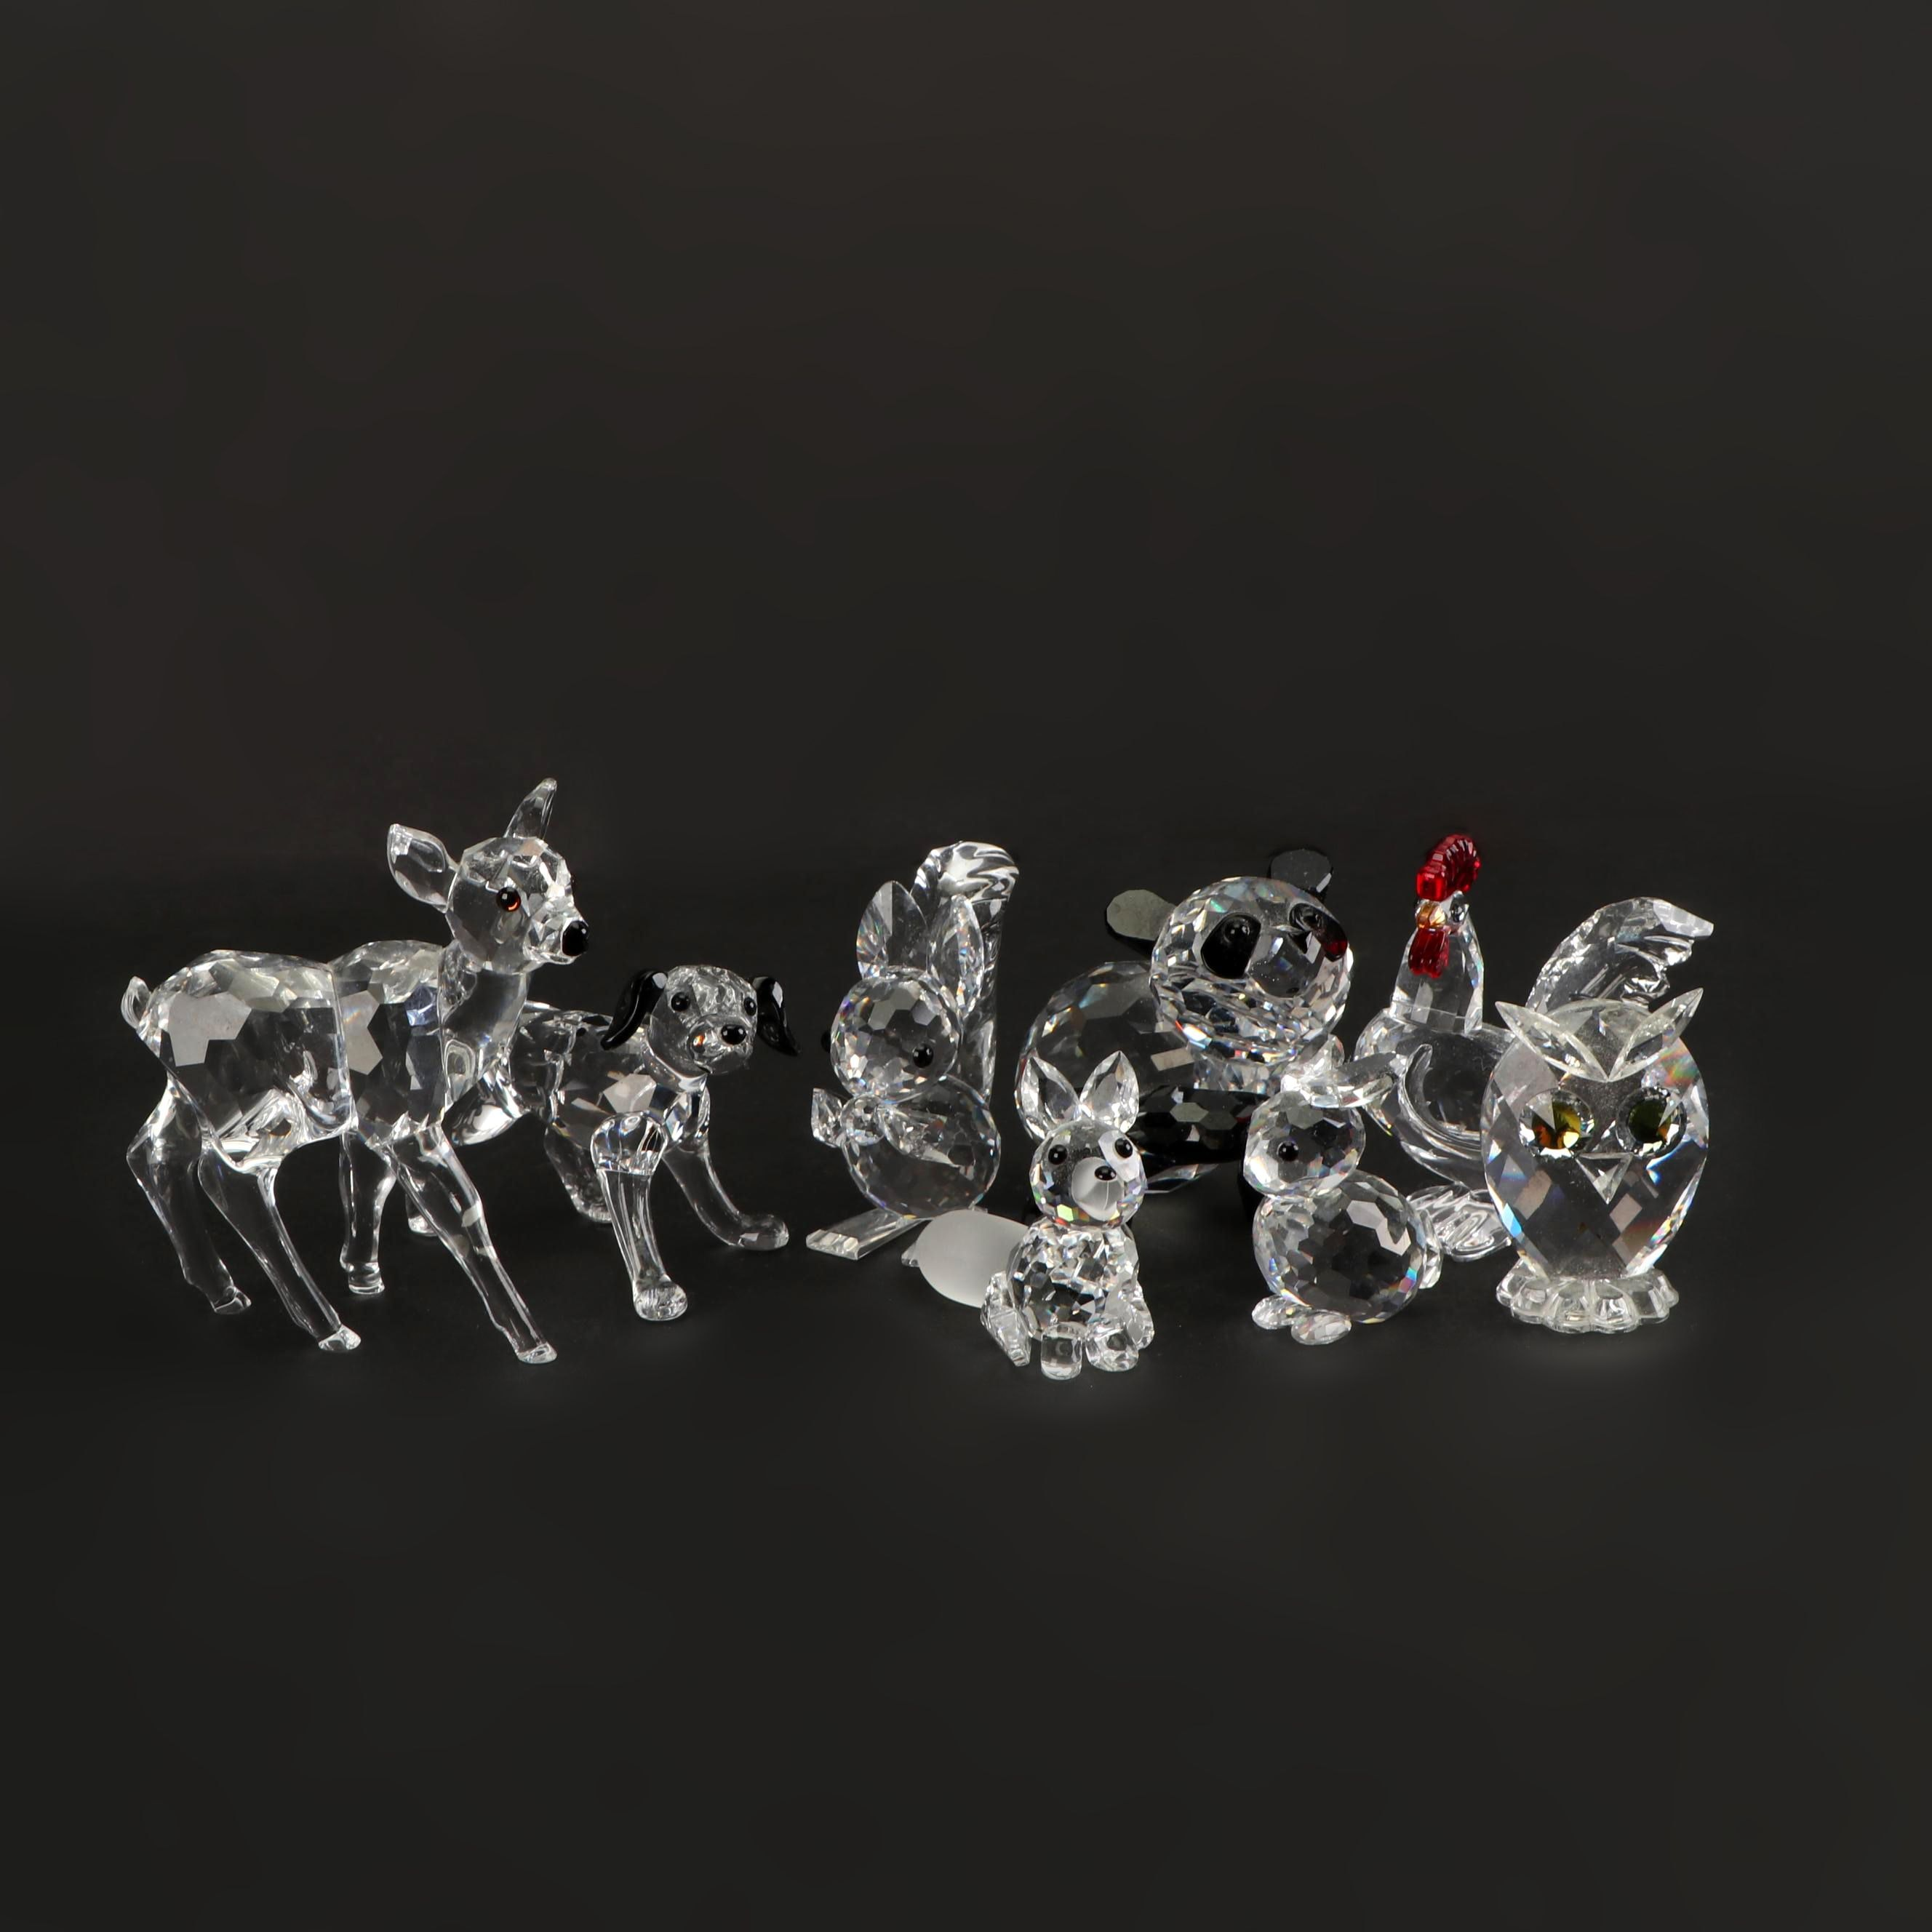 Swarovski Lead Glass Animal Figurines, 1990s